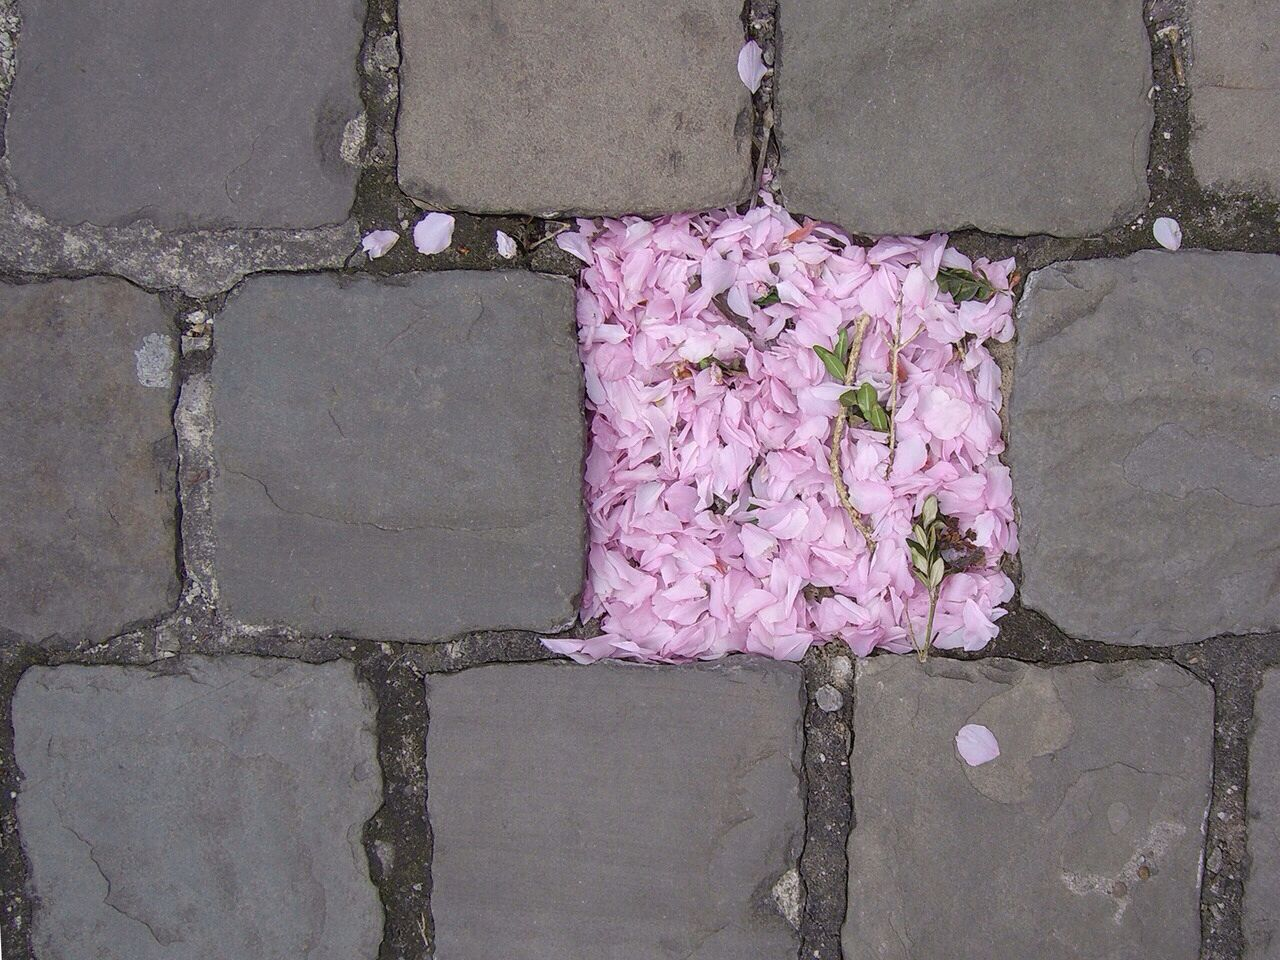 Square of pink